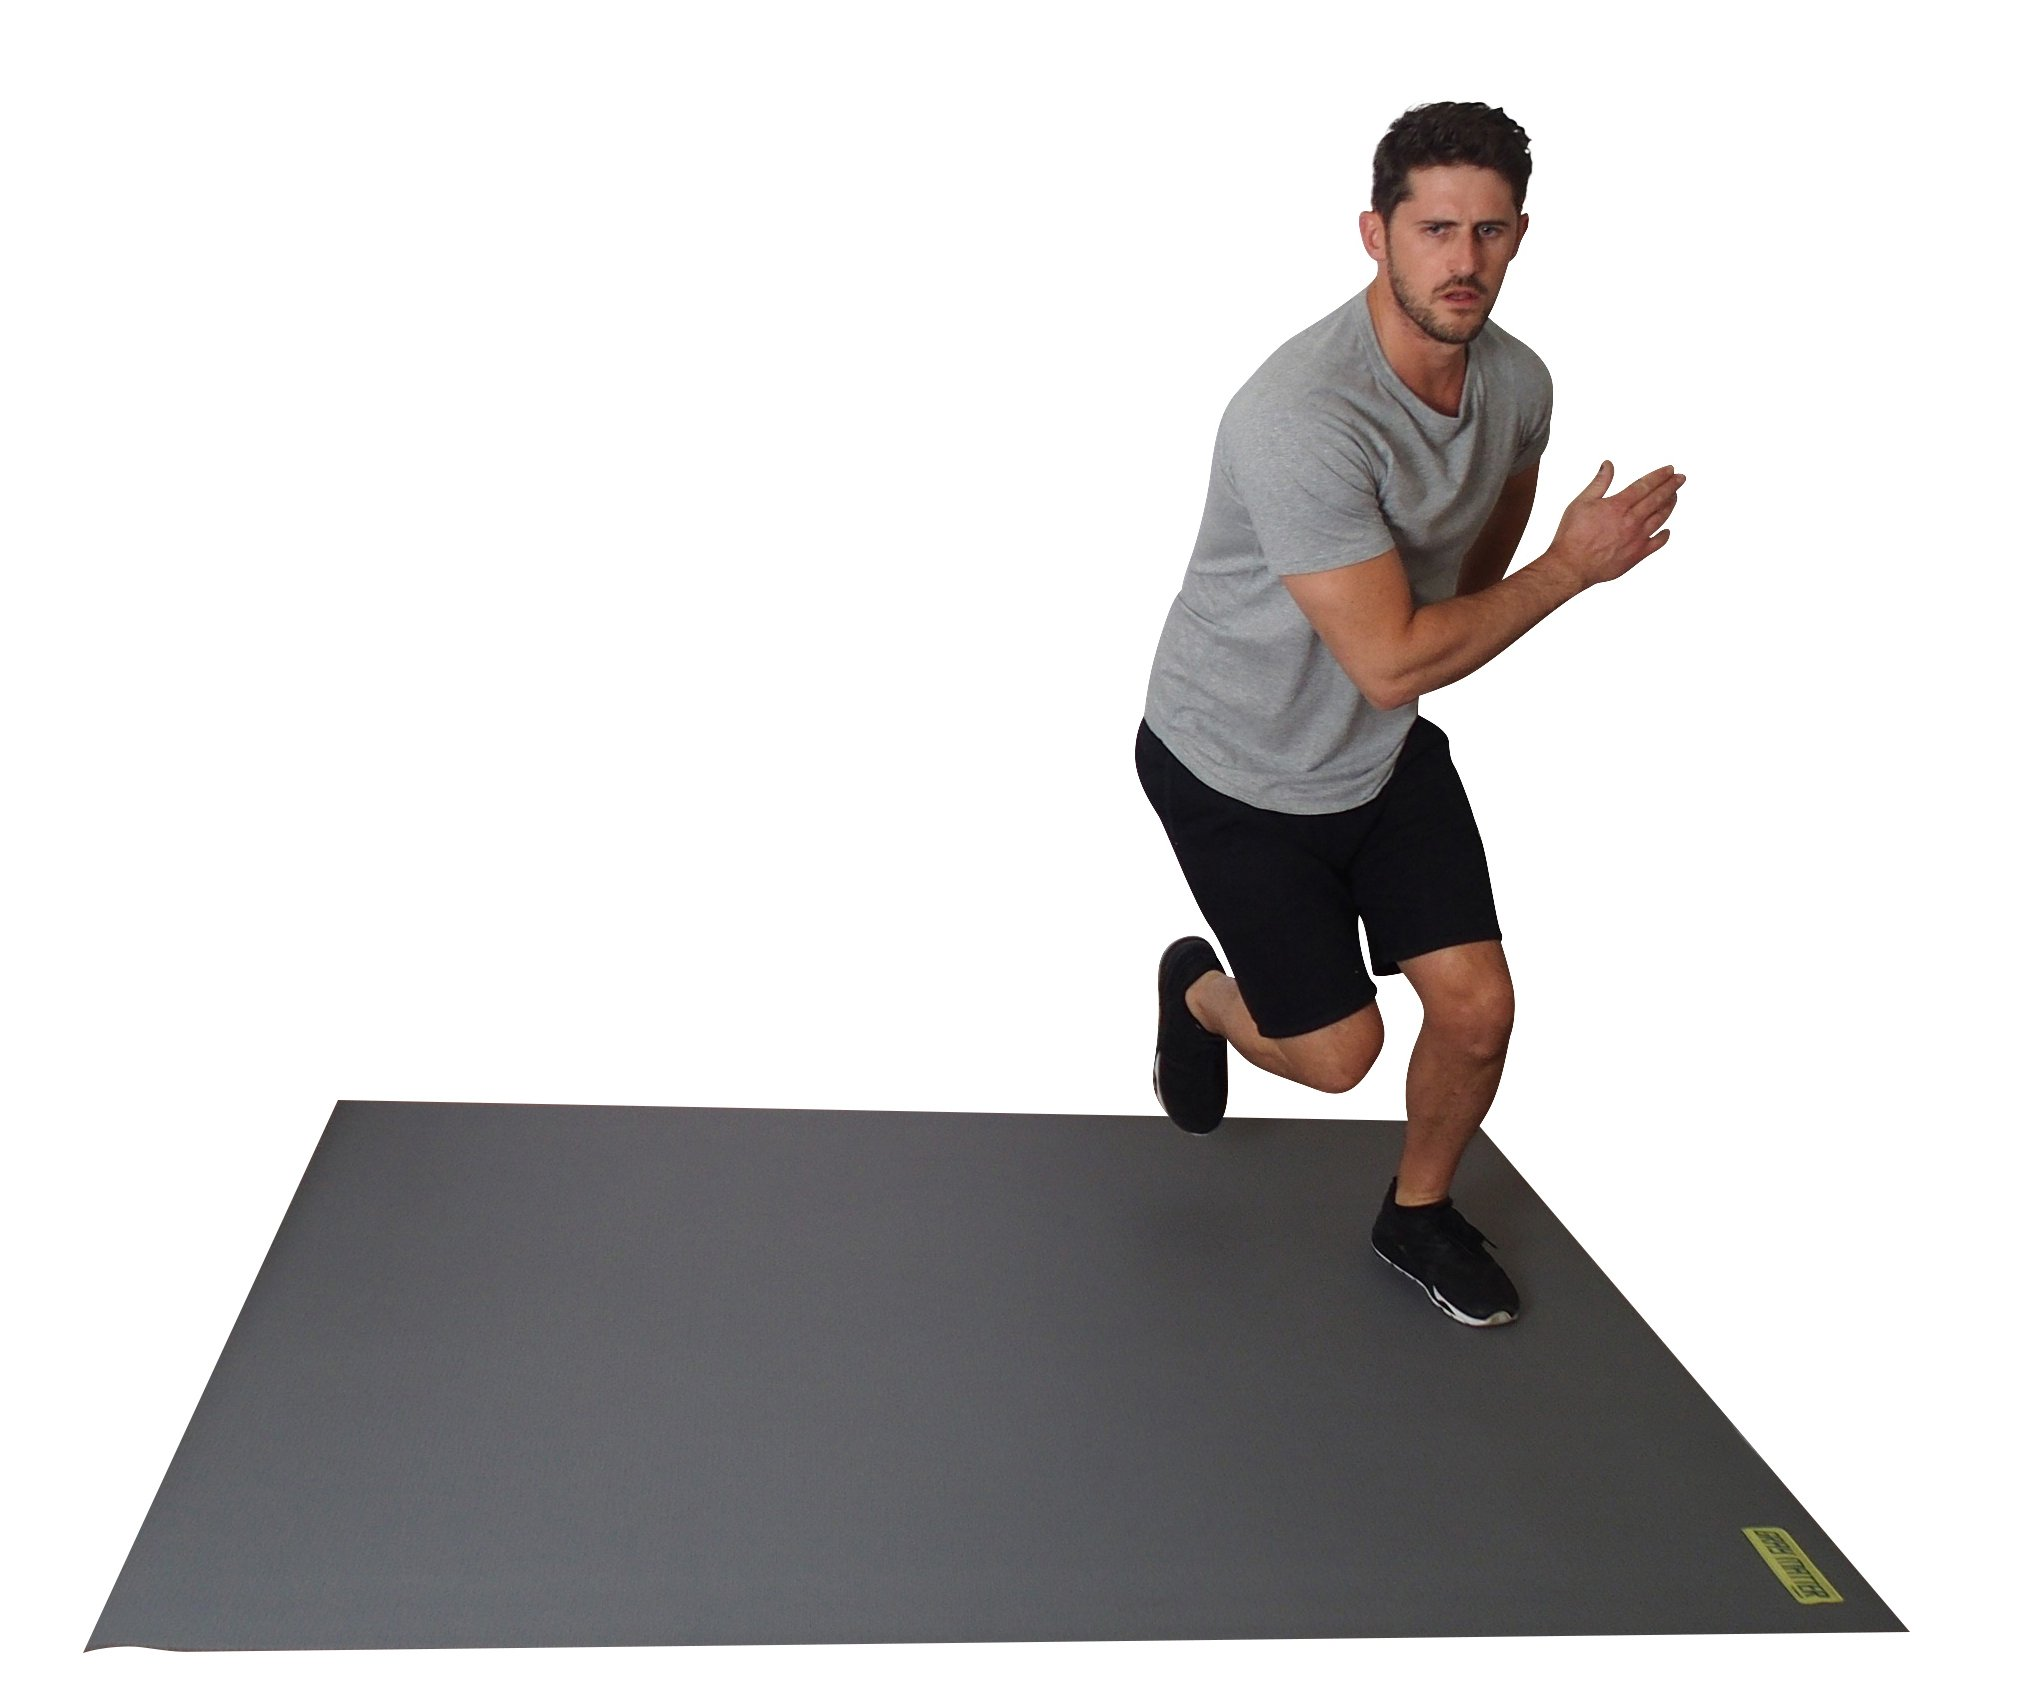 Large Exercise Mat For Cardio Workouts 72'' Long x 60'' Wide x 7mm Thick (6' x 5' x 7mm). For Home-Based Workouts With or Without SHOES. Comes With a Storage Bag & Storage Straps. by Square36 (Image #7)